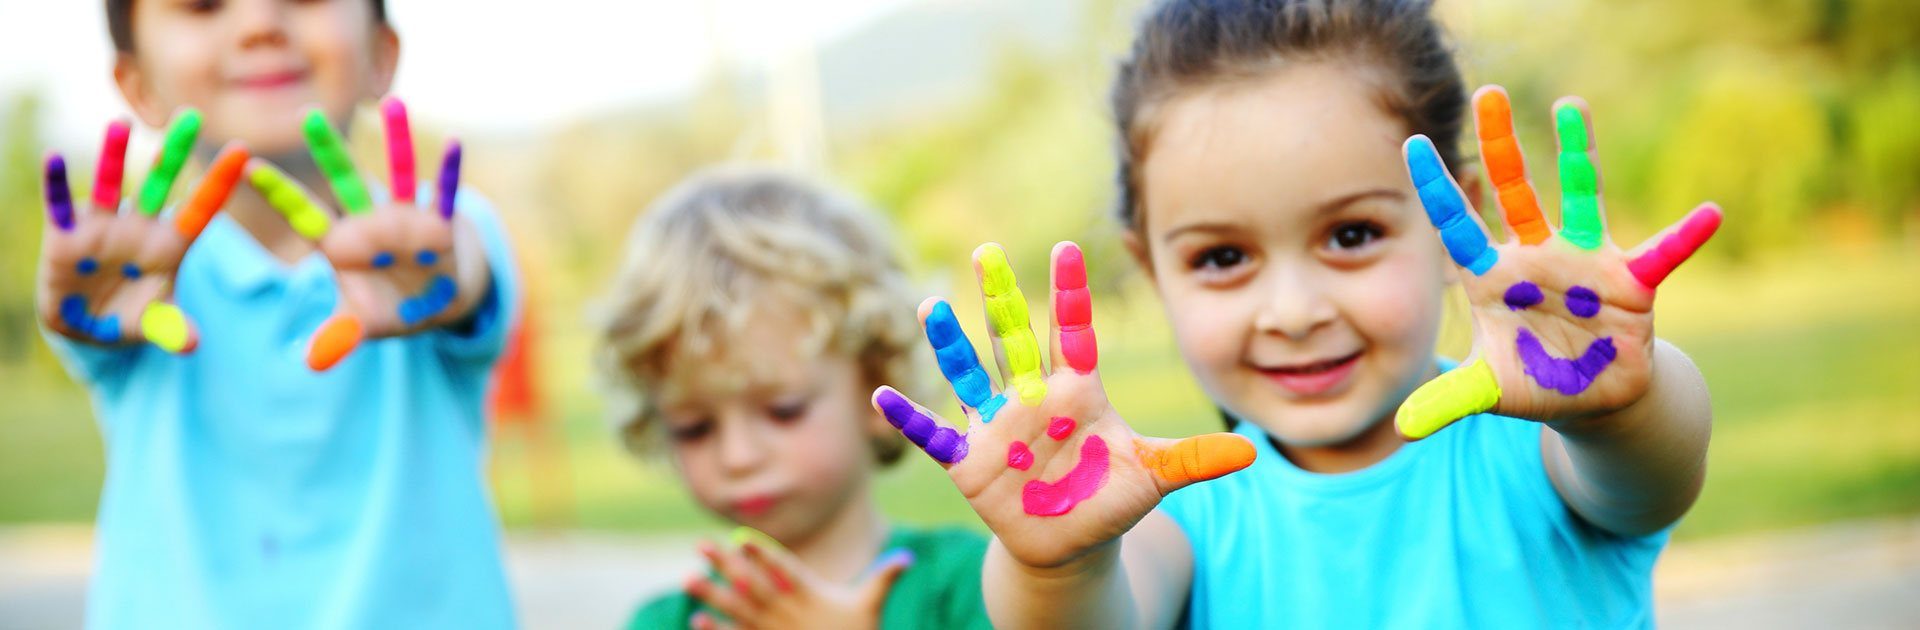 A photo promoting corporate social responsibility initiatives of d3h hotels, particularly works with childrens' charities:  Two young children are cheerily holding out both pairs of hands with fingers smeared in multi colors and happy faces painted on palms.  In the background a younger child looks curiously down at his own painted covered hands.